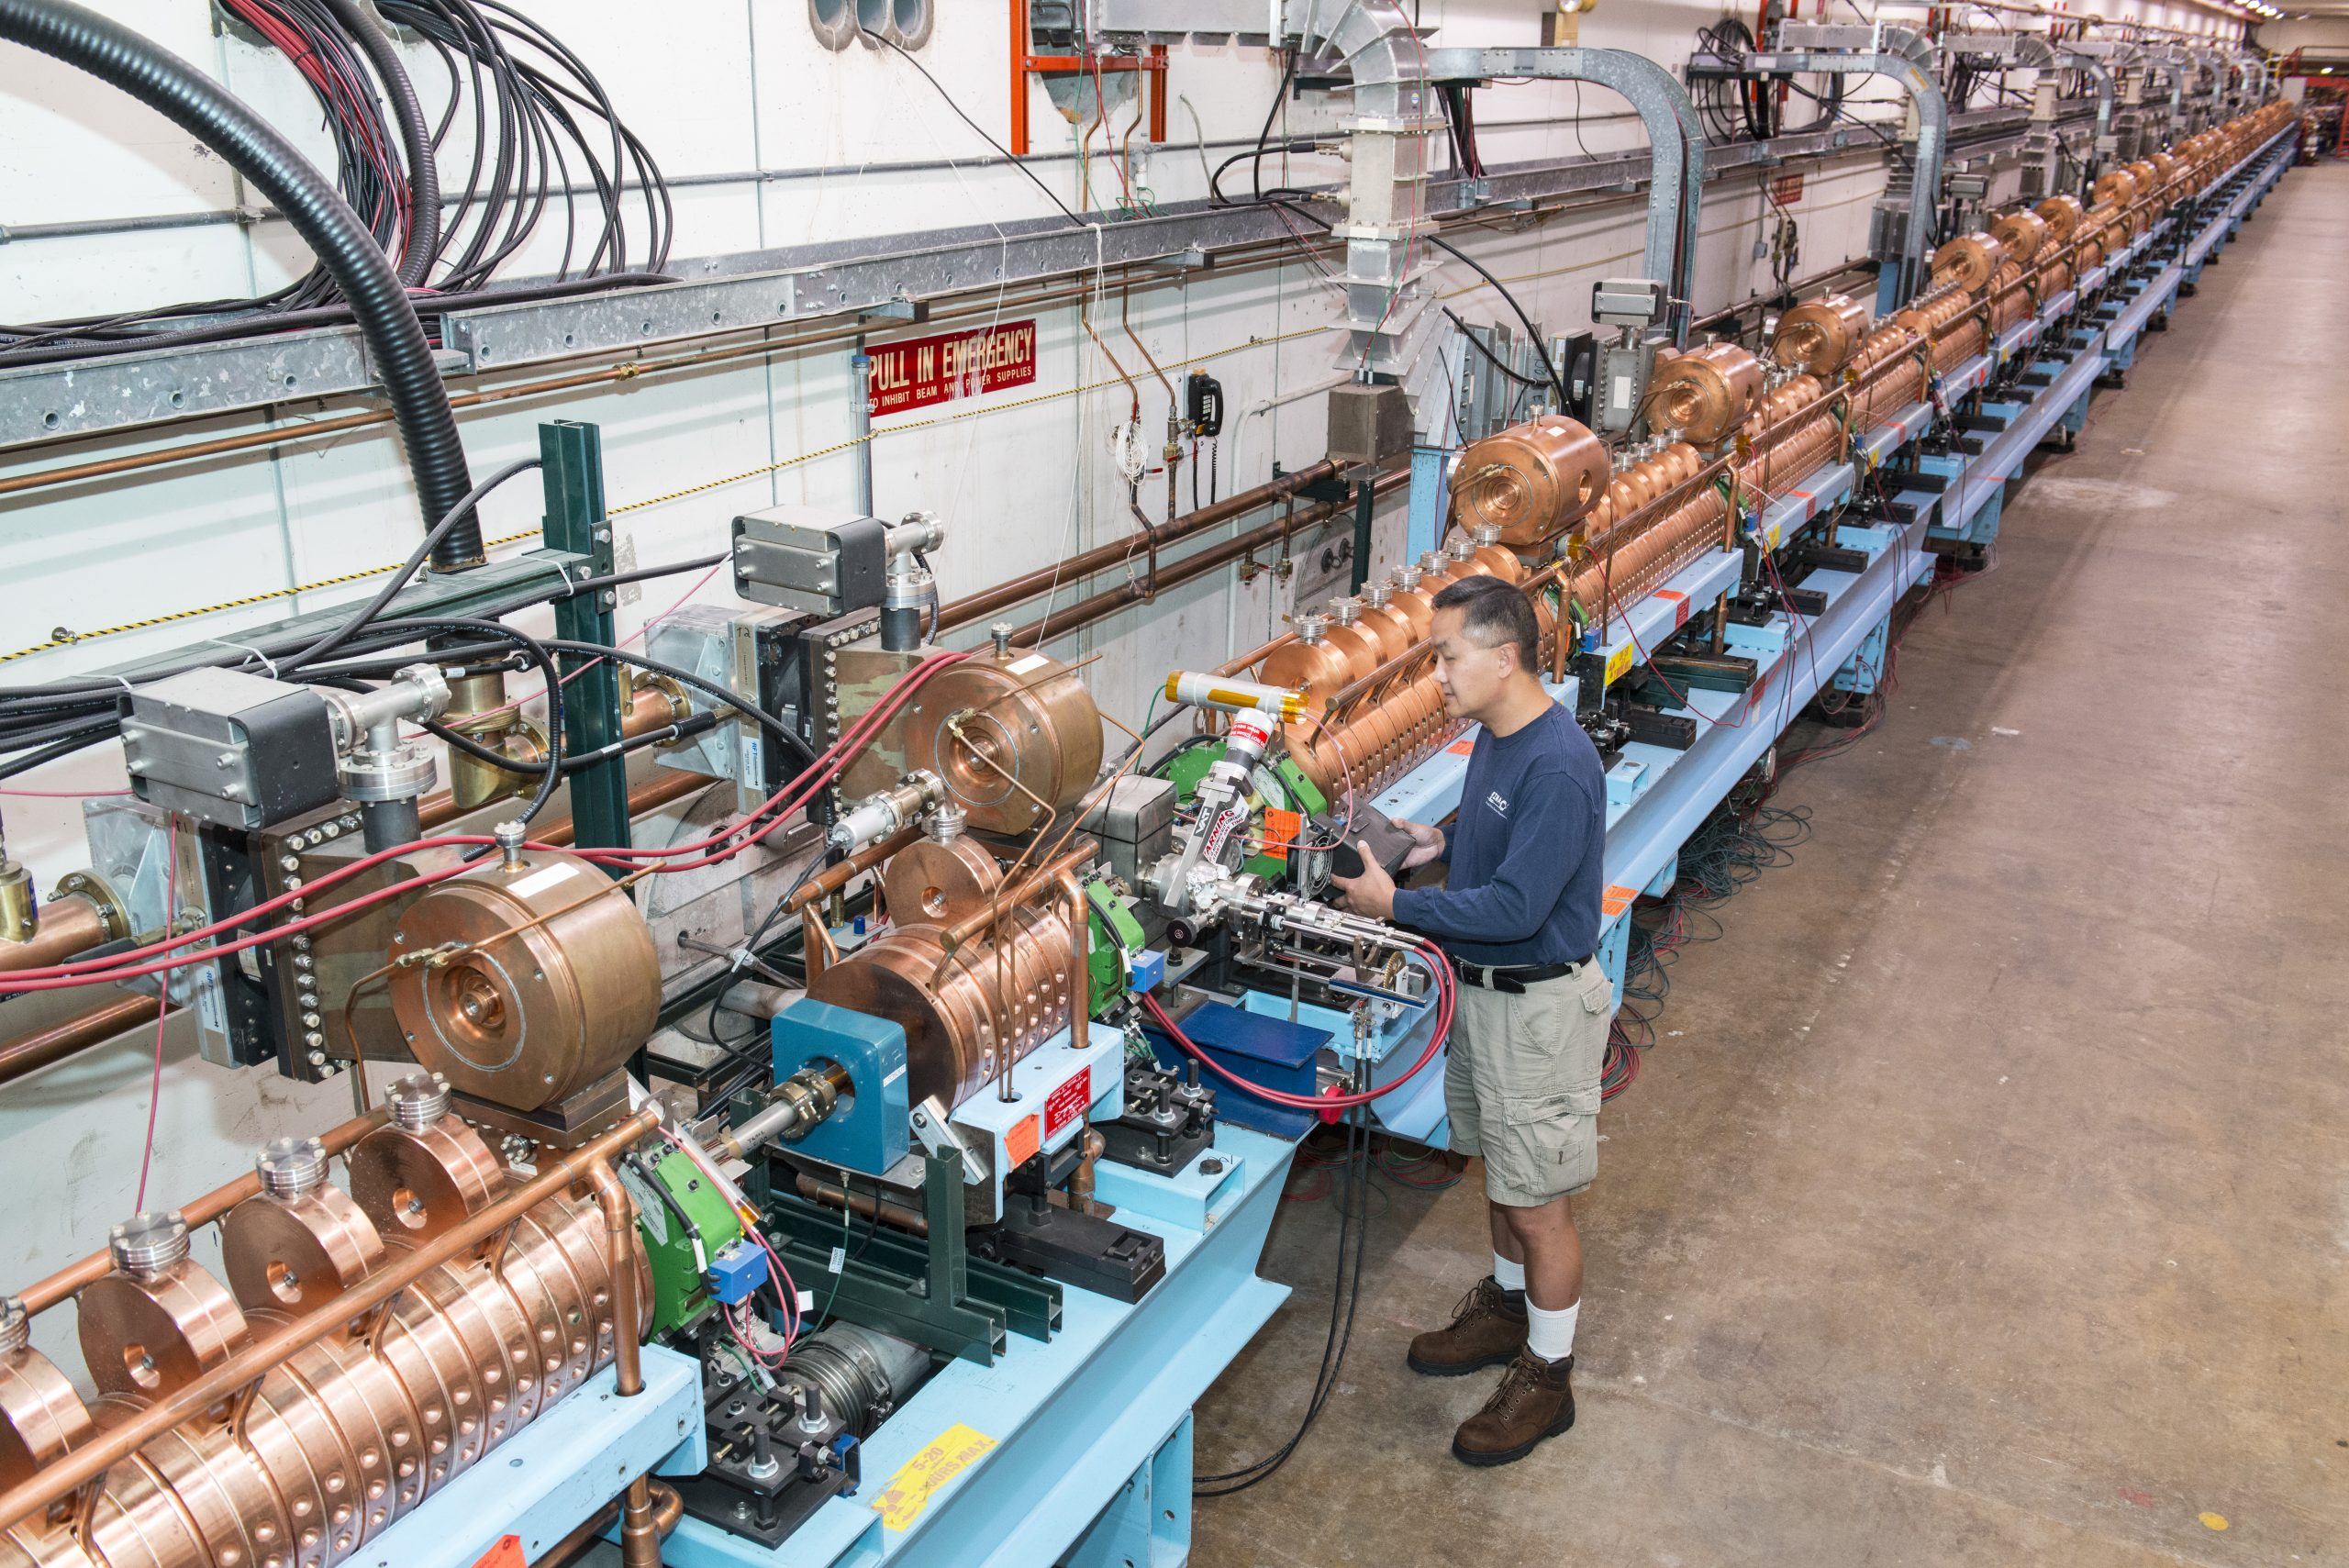 The Fermilab Linac will undergo upgrades to improve its reliability during the accelerator shutdown. Photo: Reidar Hahn